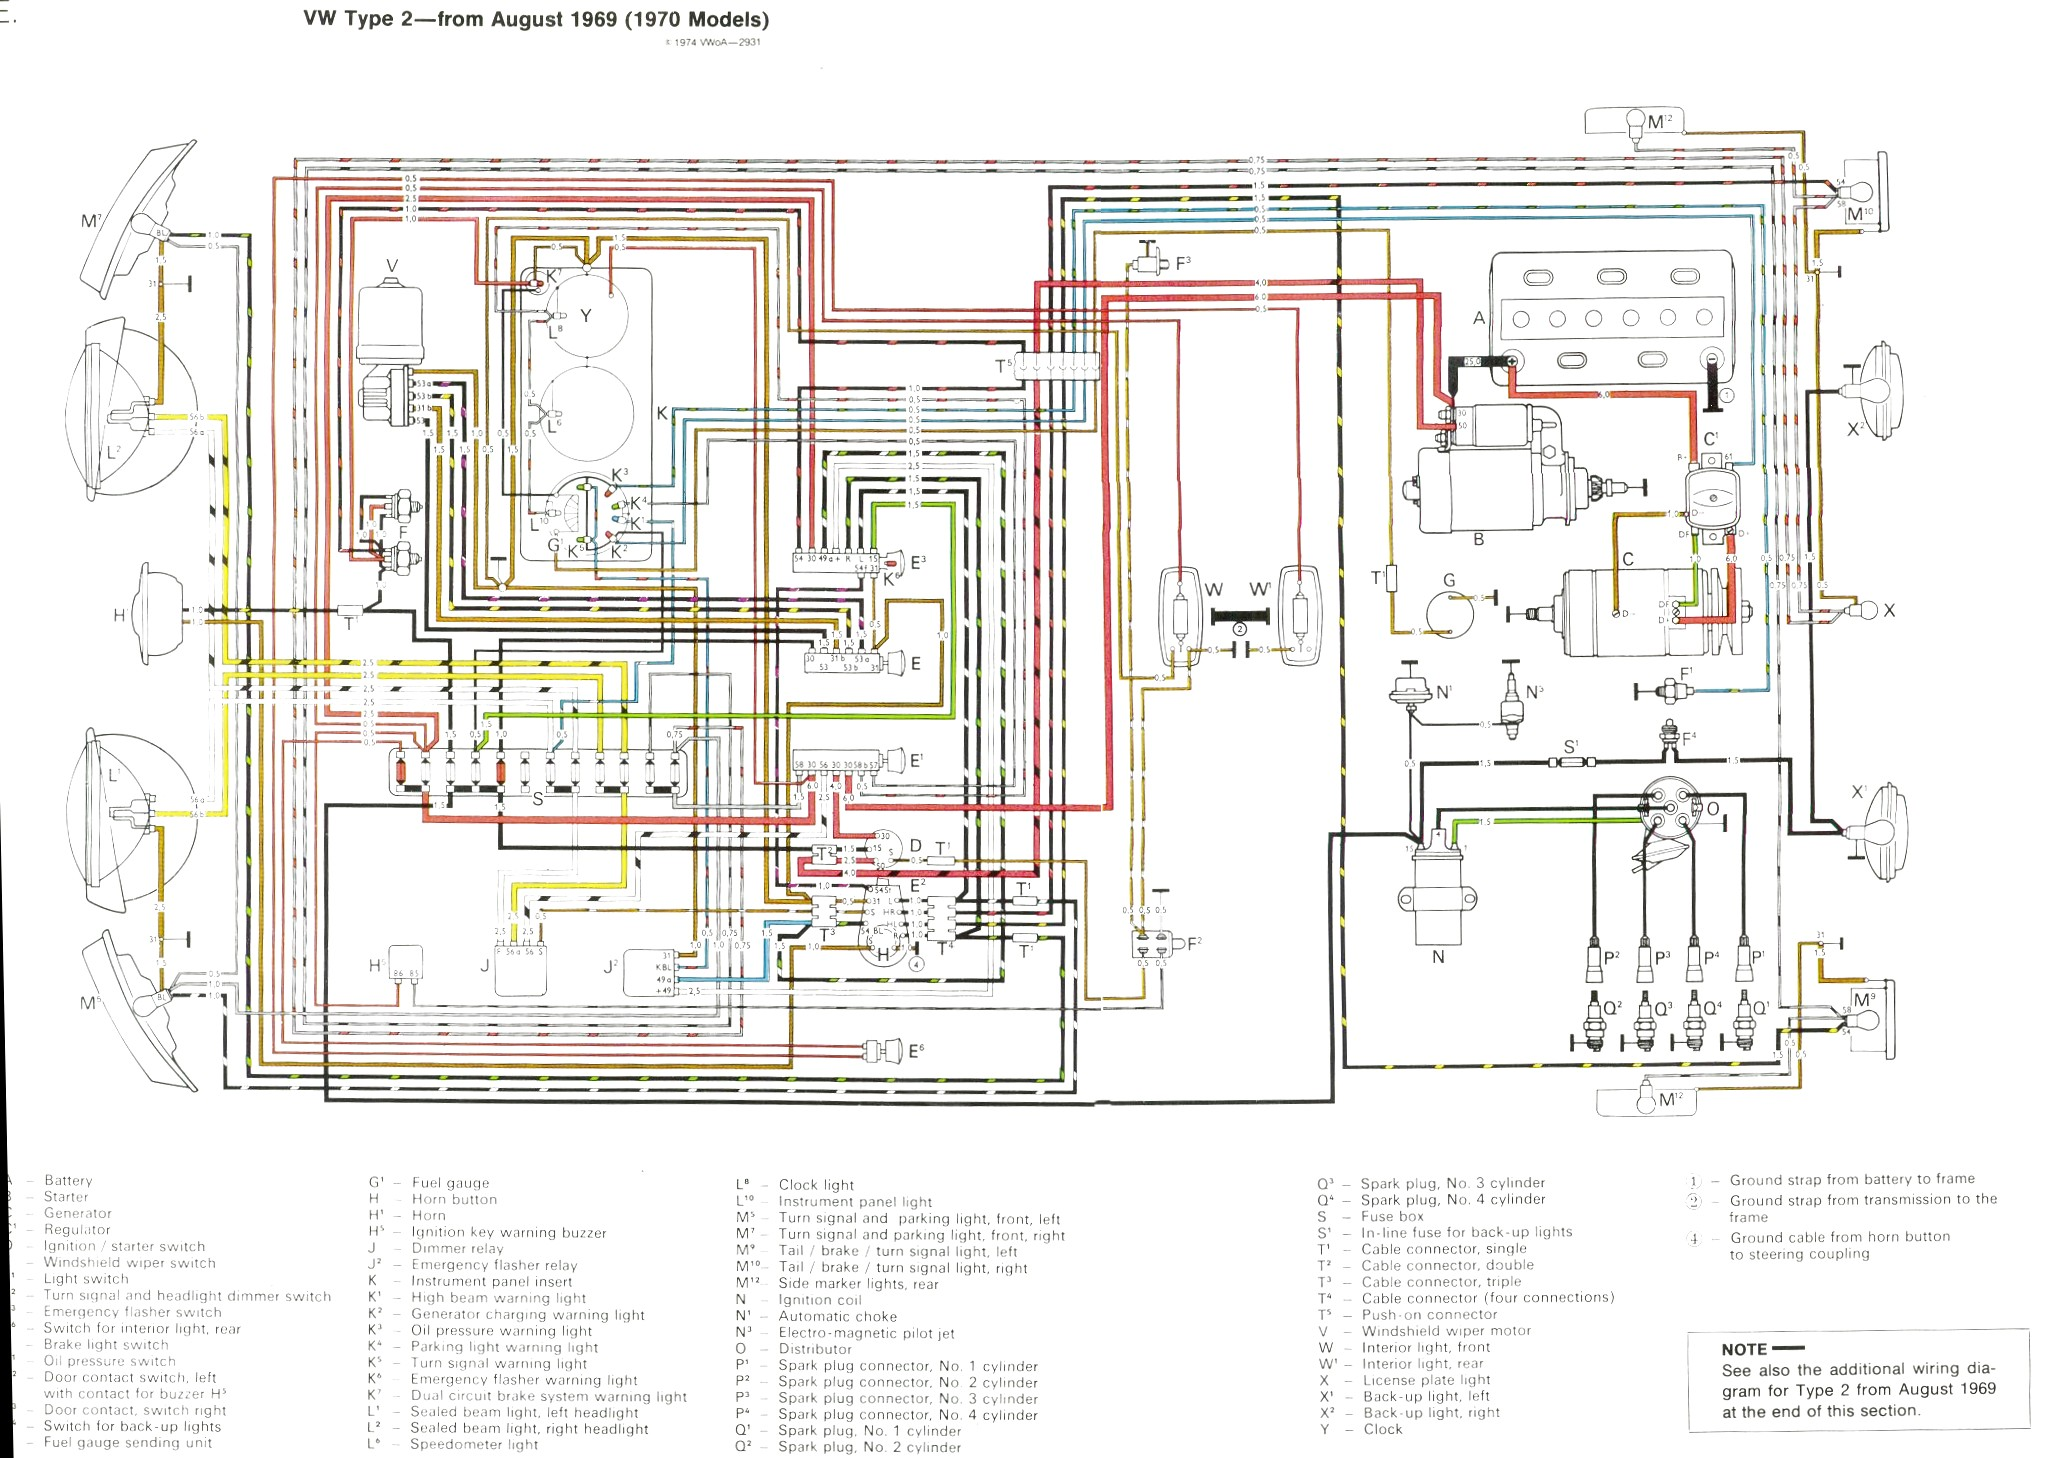 bus 69 70 vintagebus com vw bus (and other) wiring diagrams 1970 vw wiring diagram at mifinder.co